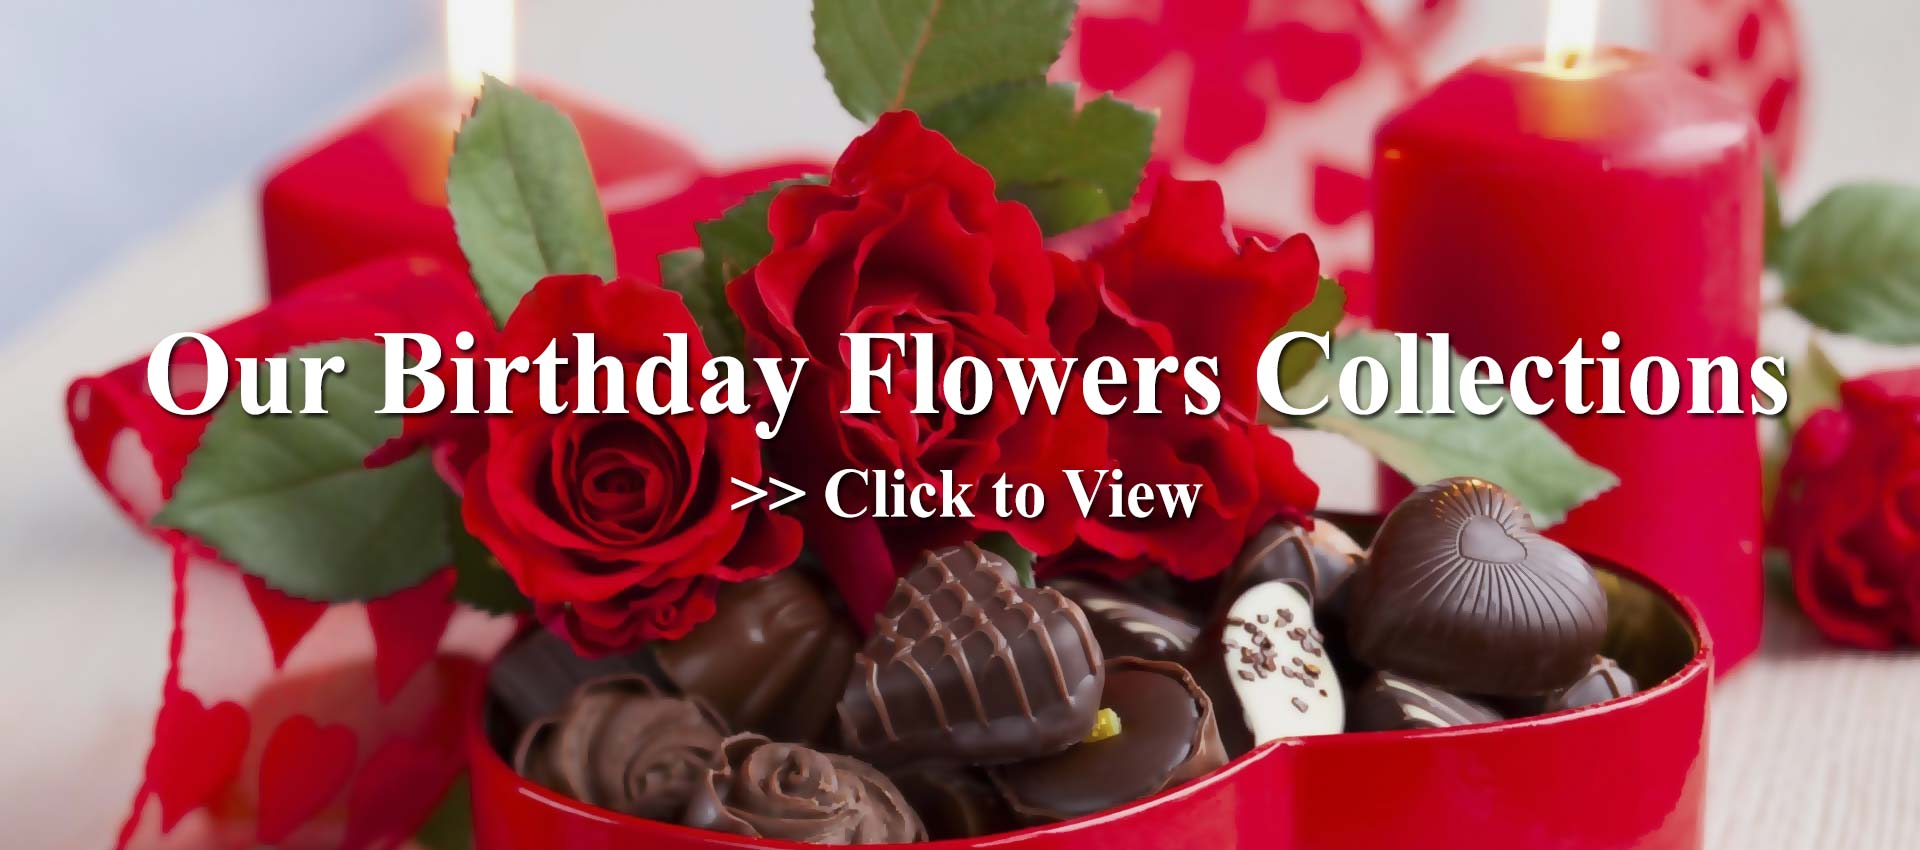 Birthday Flowers | Send Flowers Online from Myflowerflorist.com